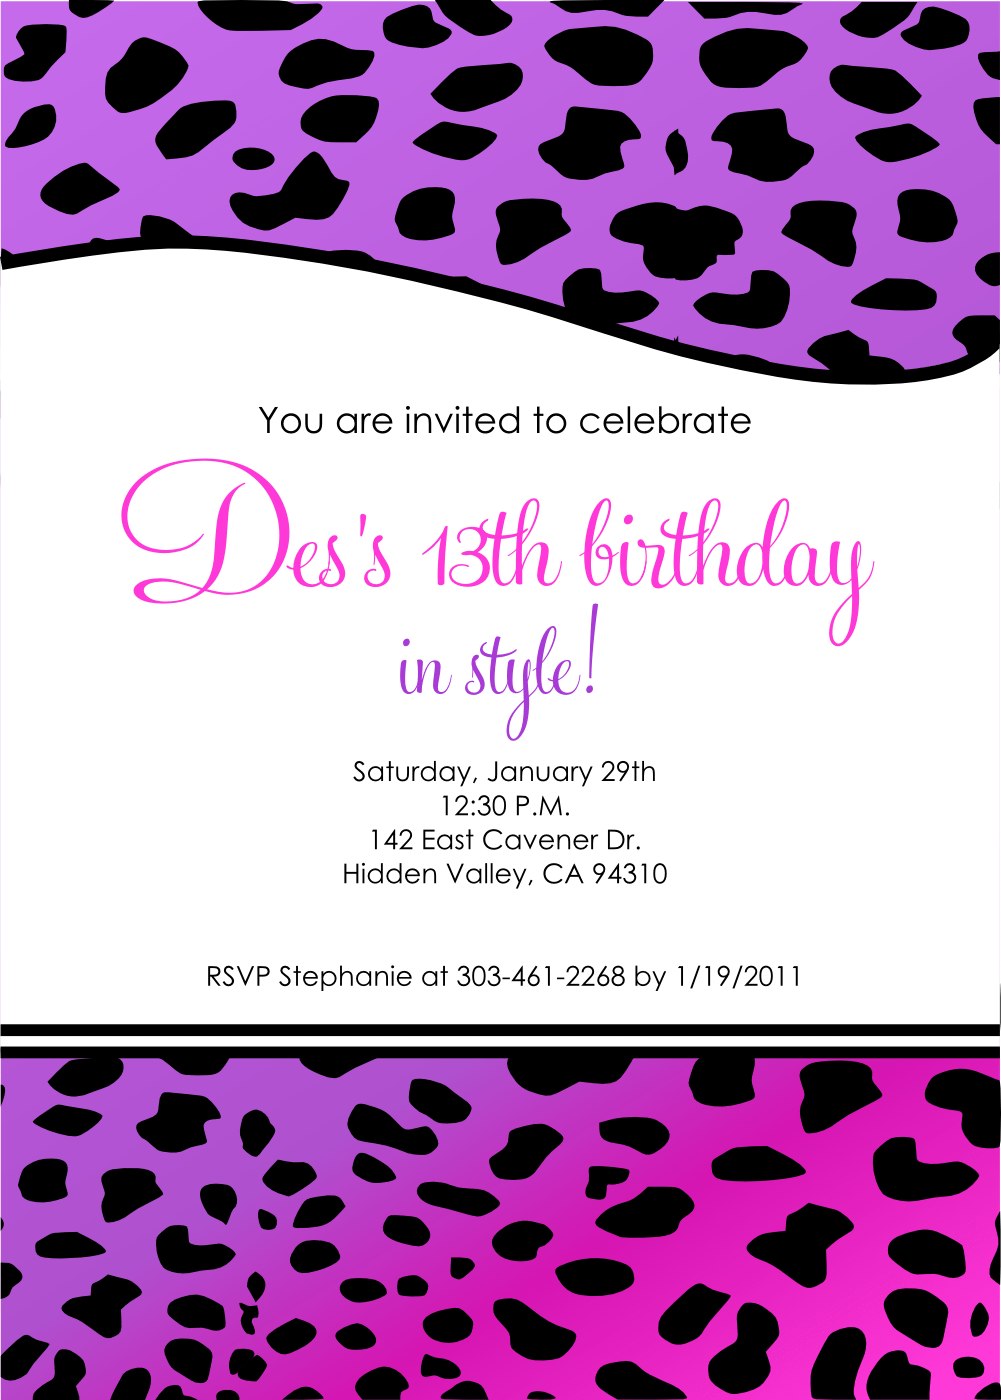 Colorful 13th Birthday Invites Vignette Invitation Card